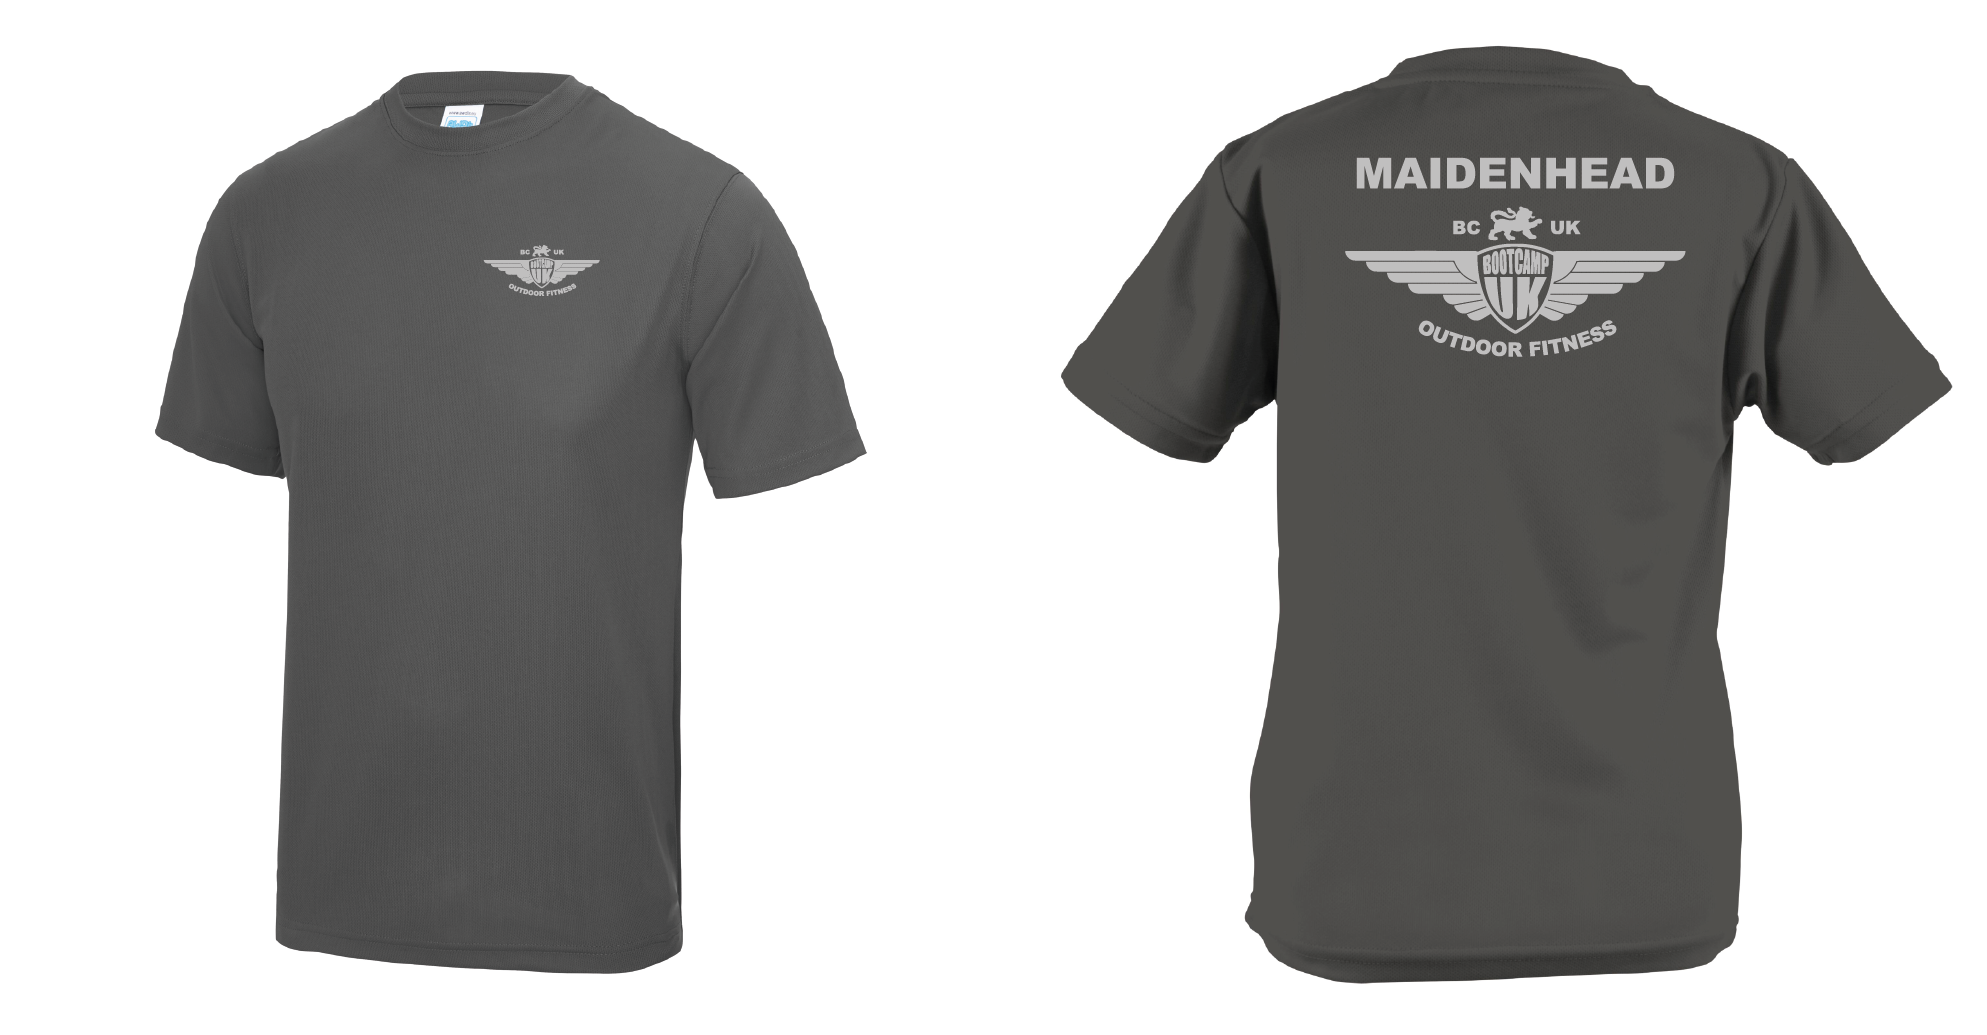 Maidenhead T Shirt